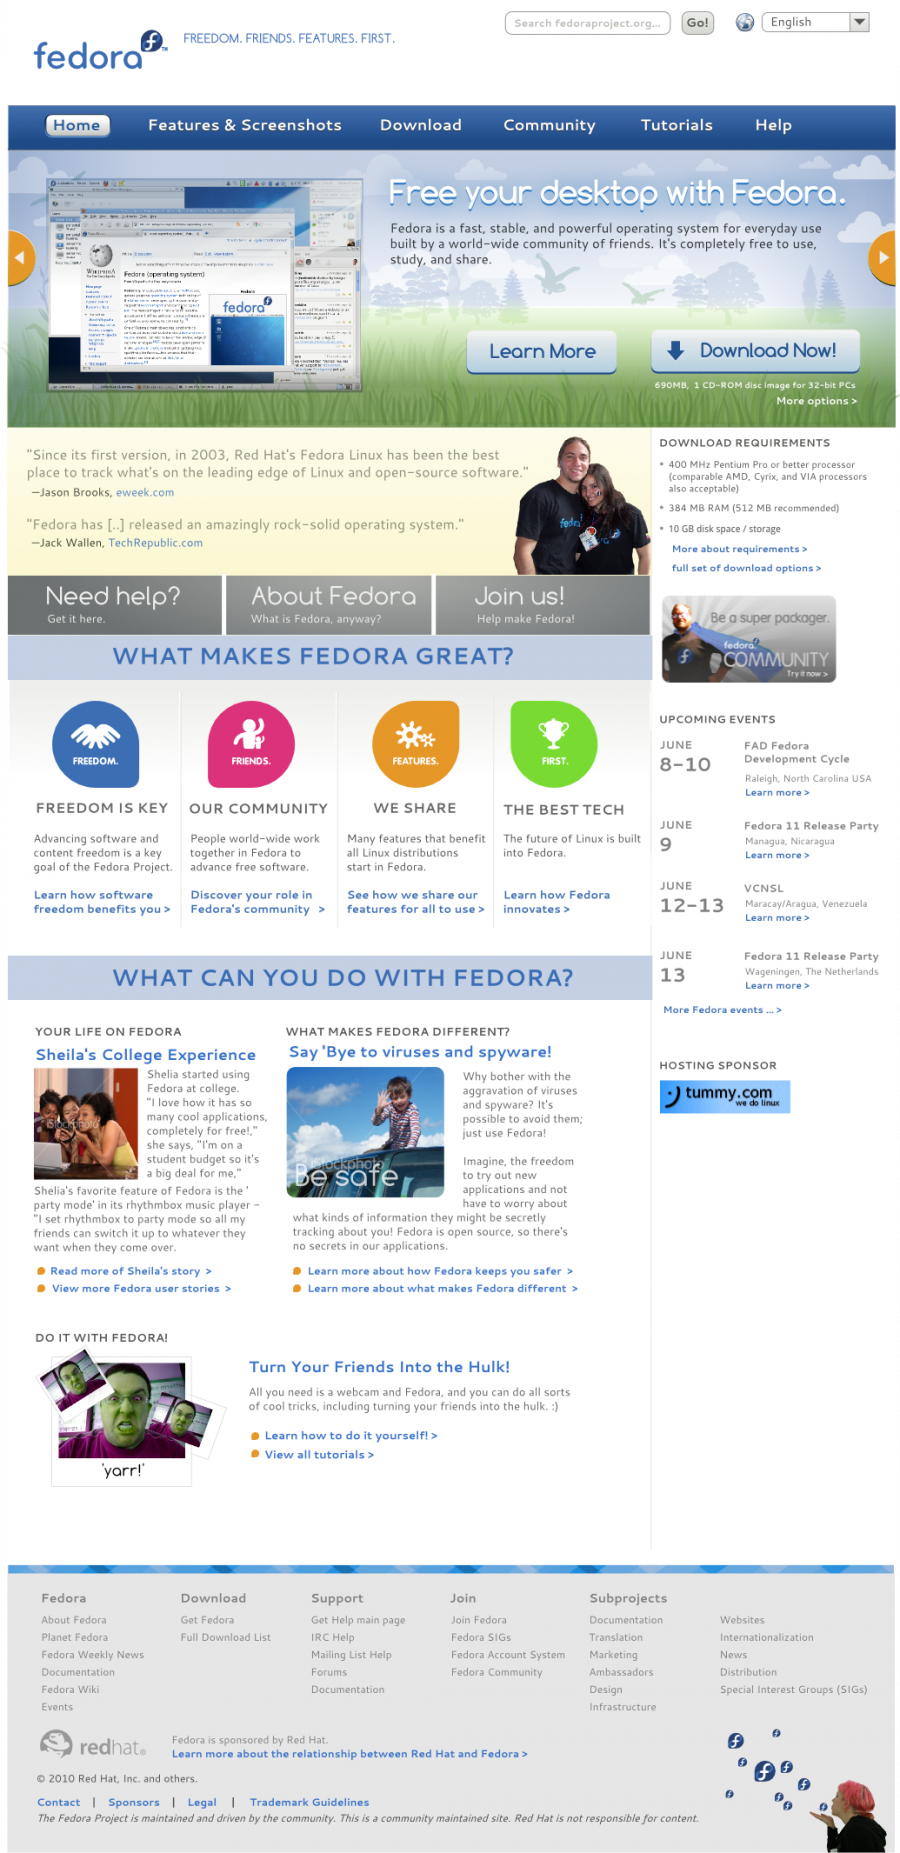 Wwwfpo-redesign-2010 1b-frontpage.png